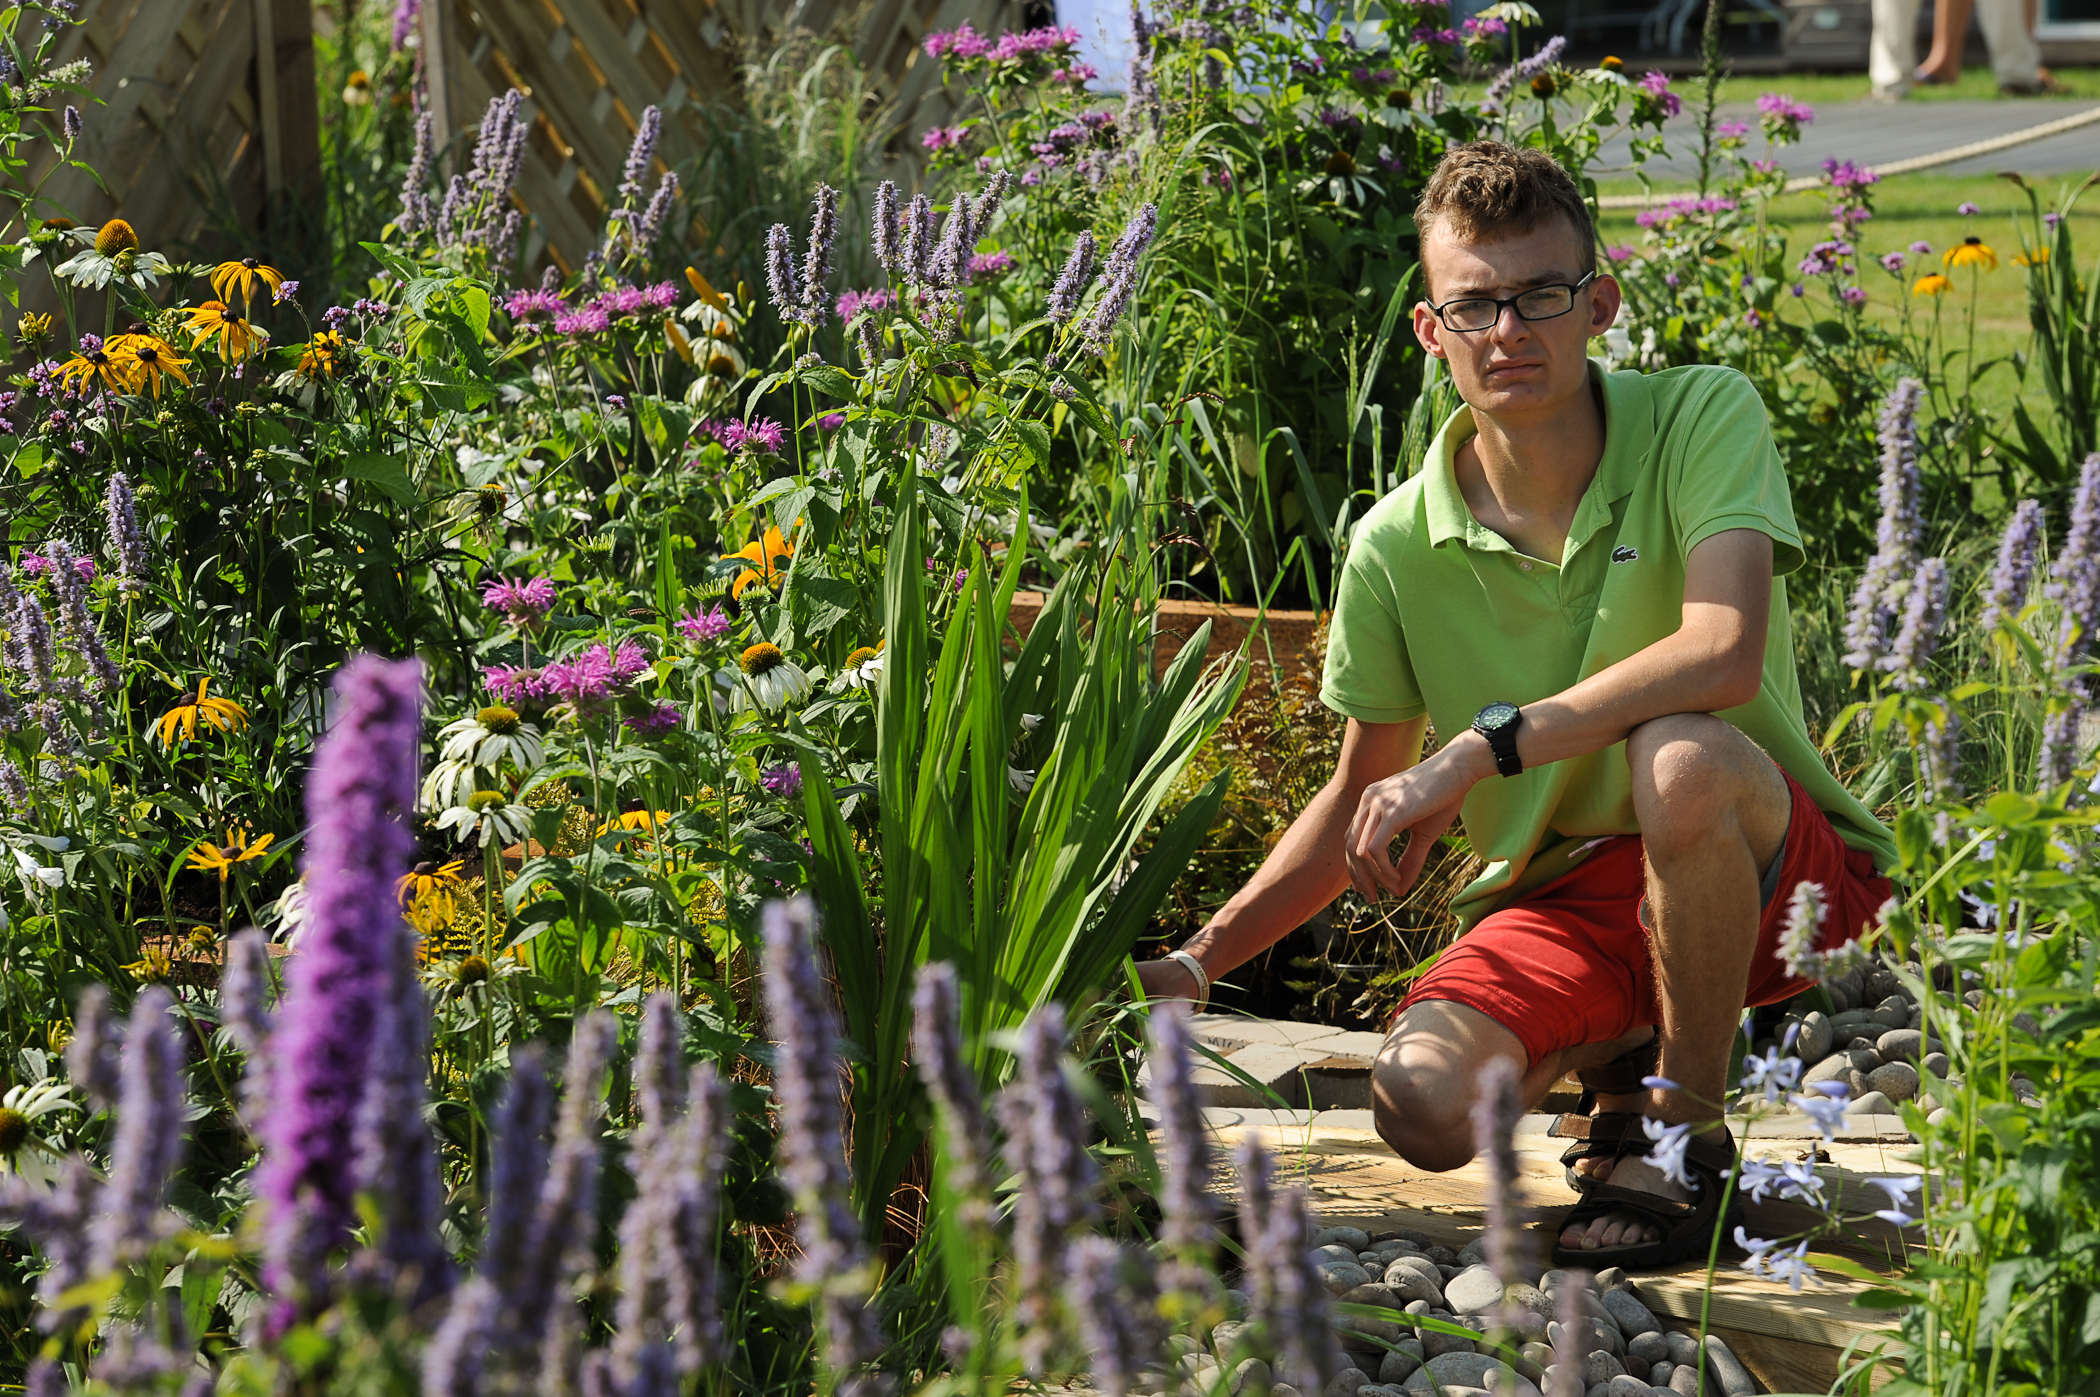 reaseheath landscape gardener wins place in national